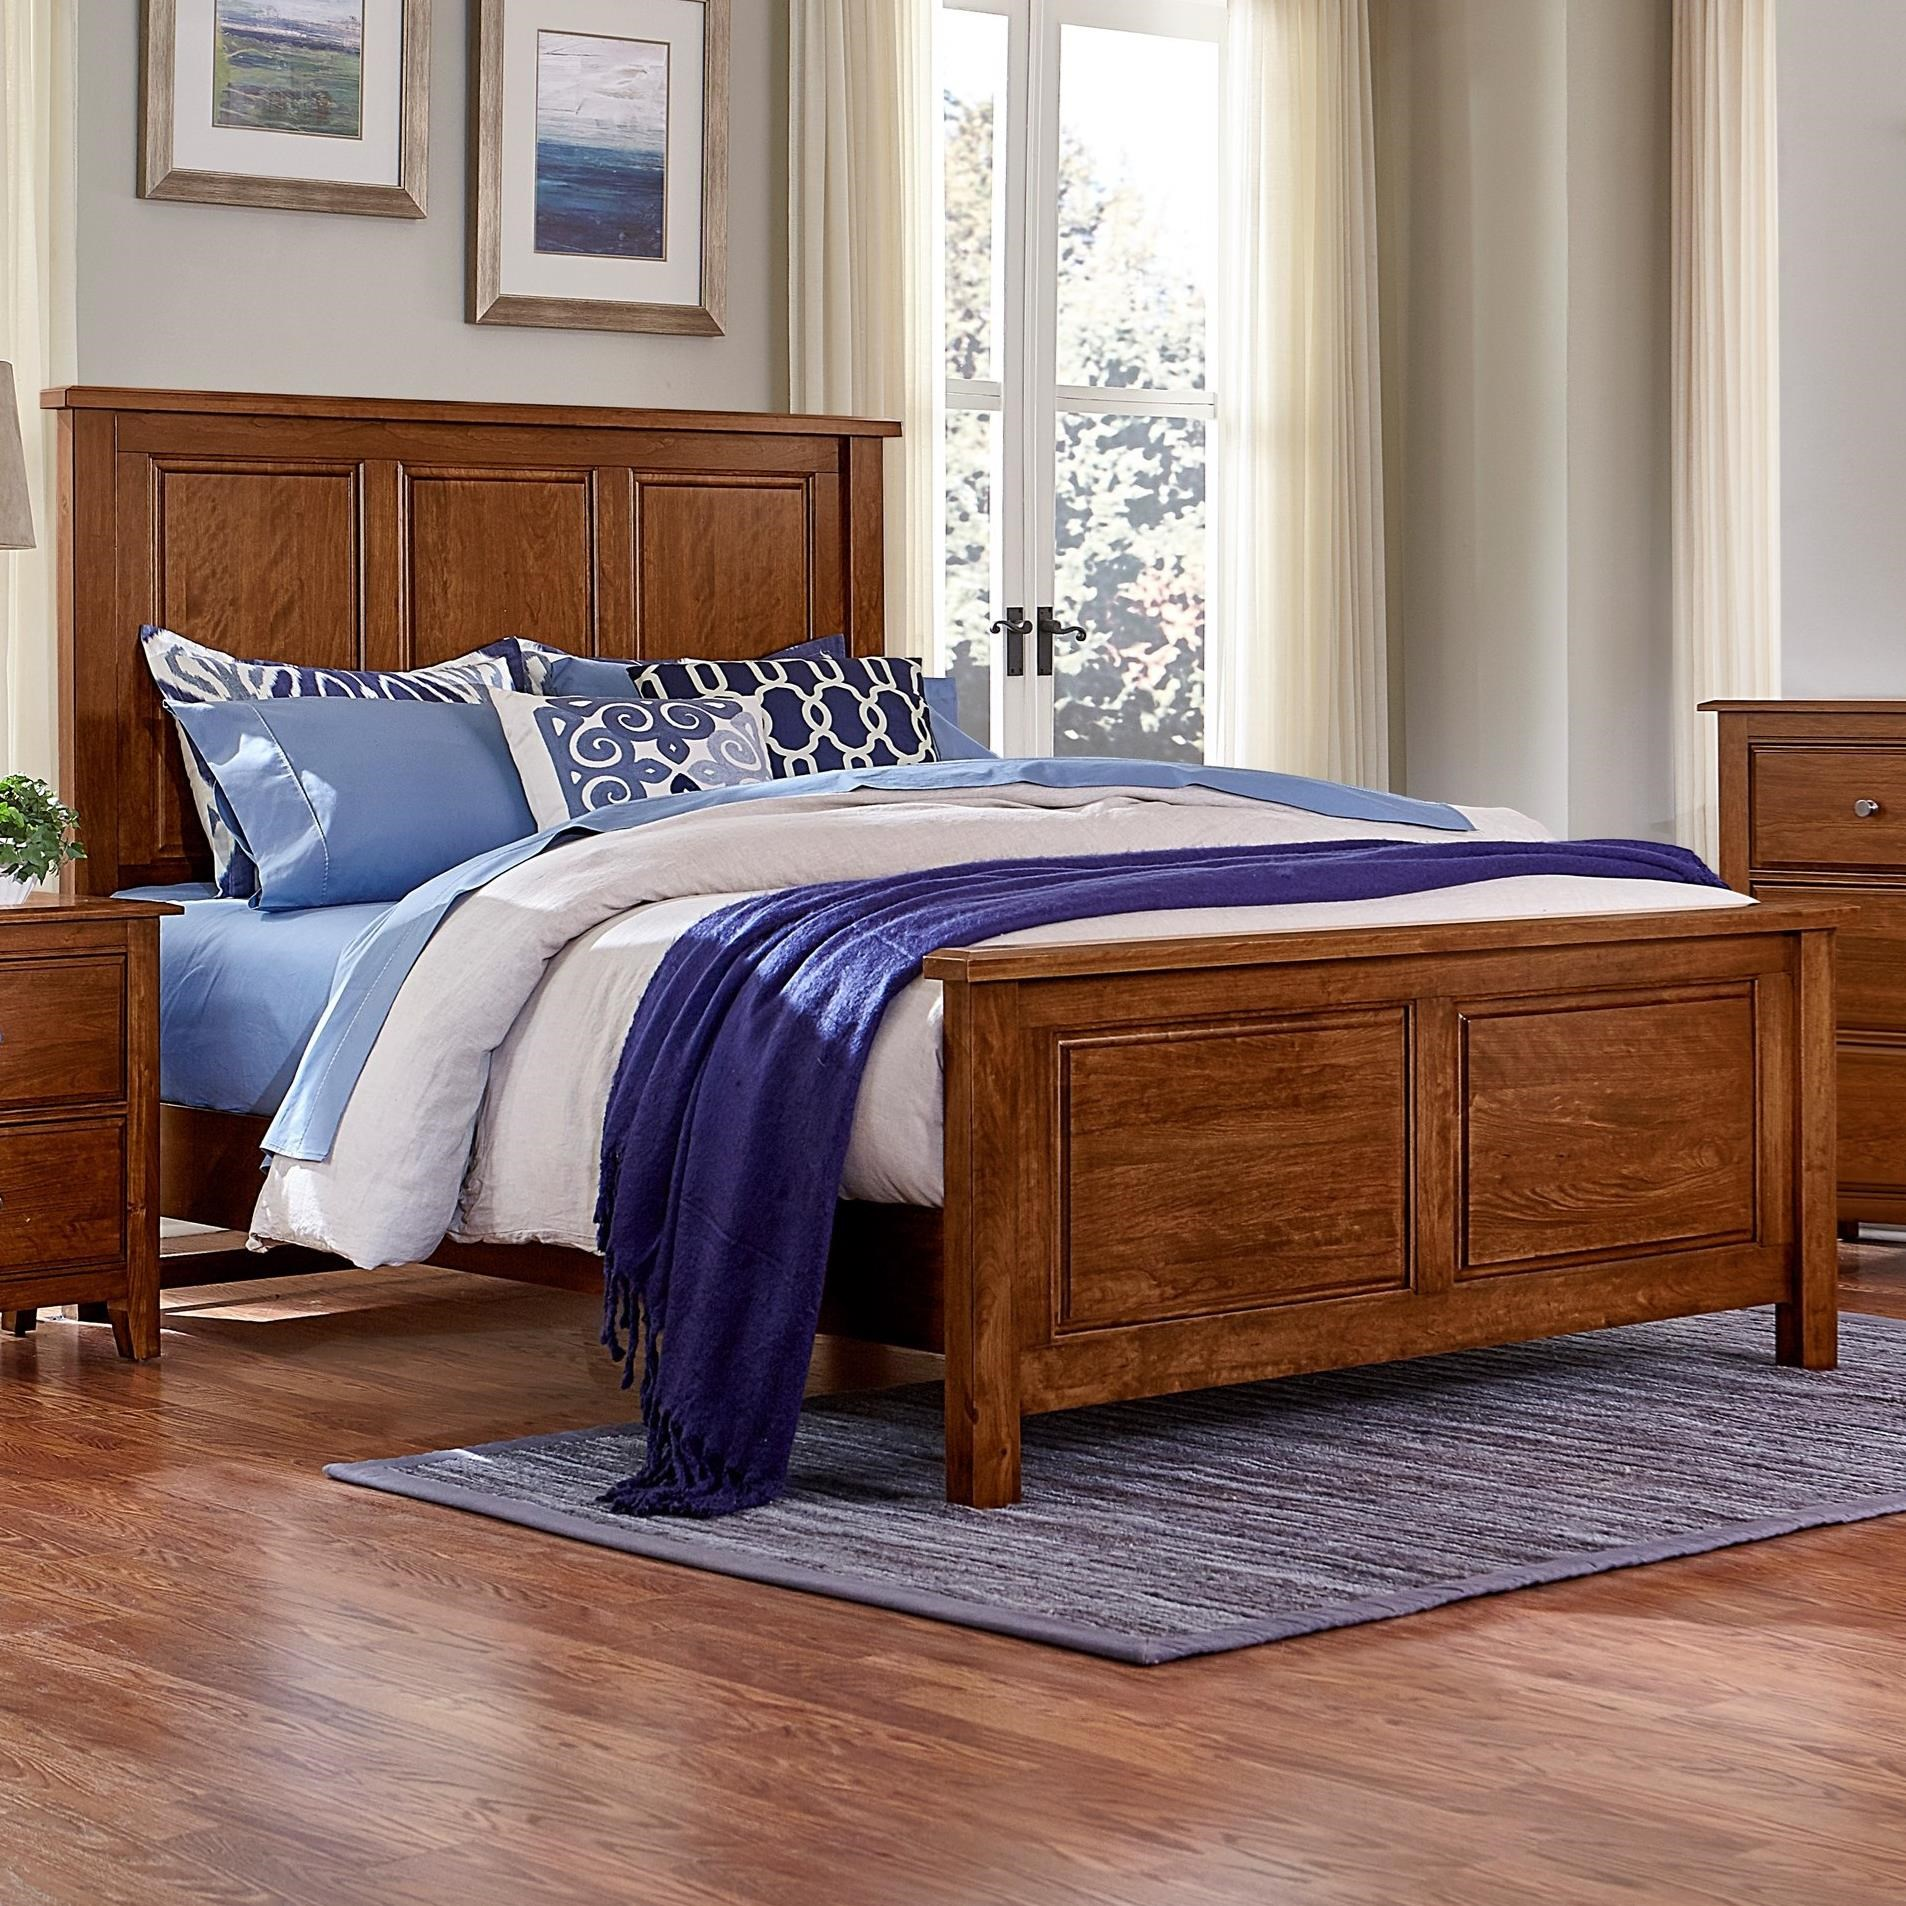 Artisan Choices King Panel Bed by Artisan & Post at Rooms and Rest